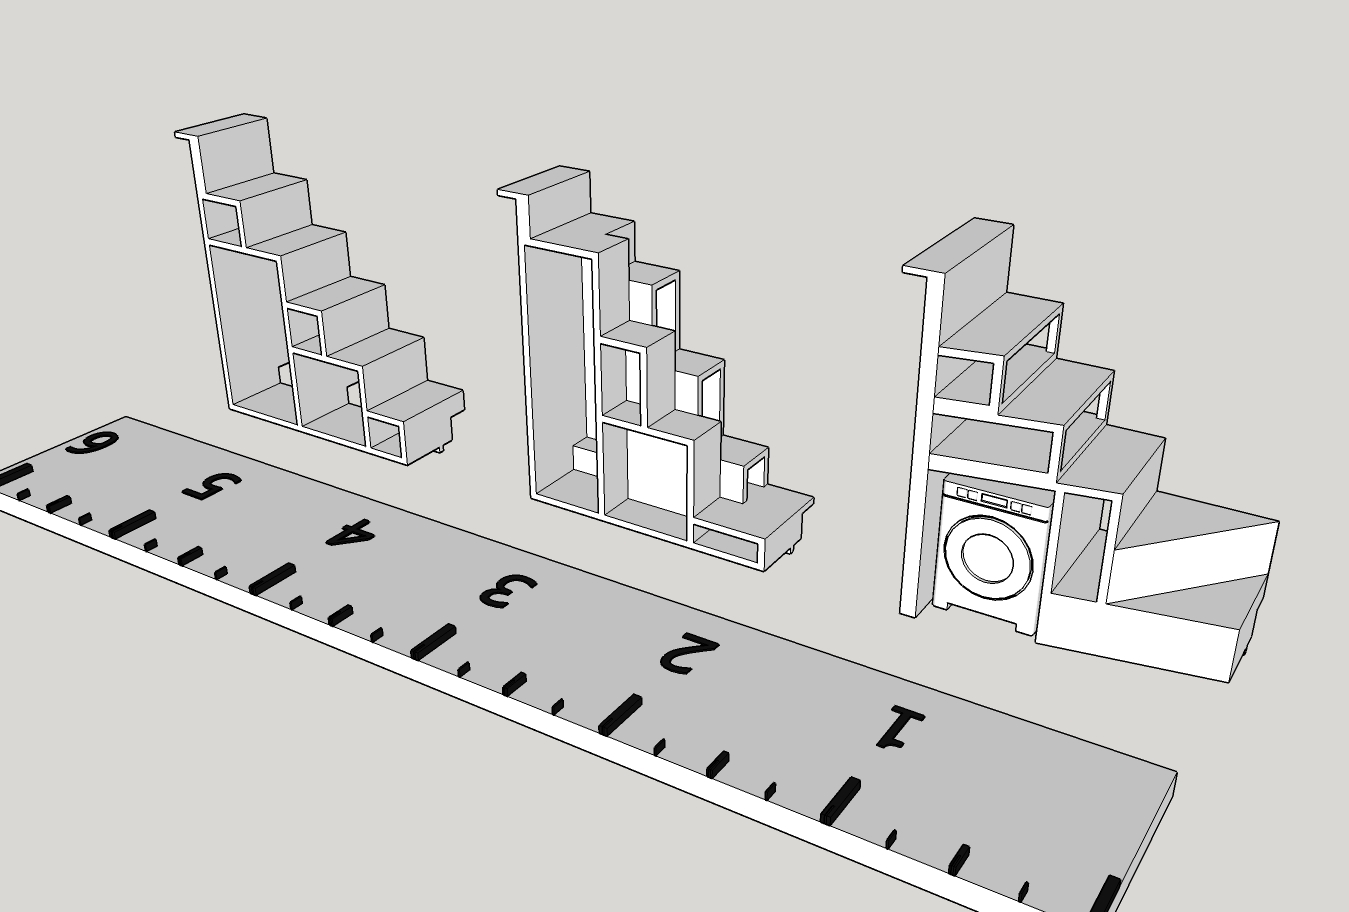 Stair Options Illustration - 3D Printed Tiny House